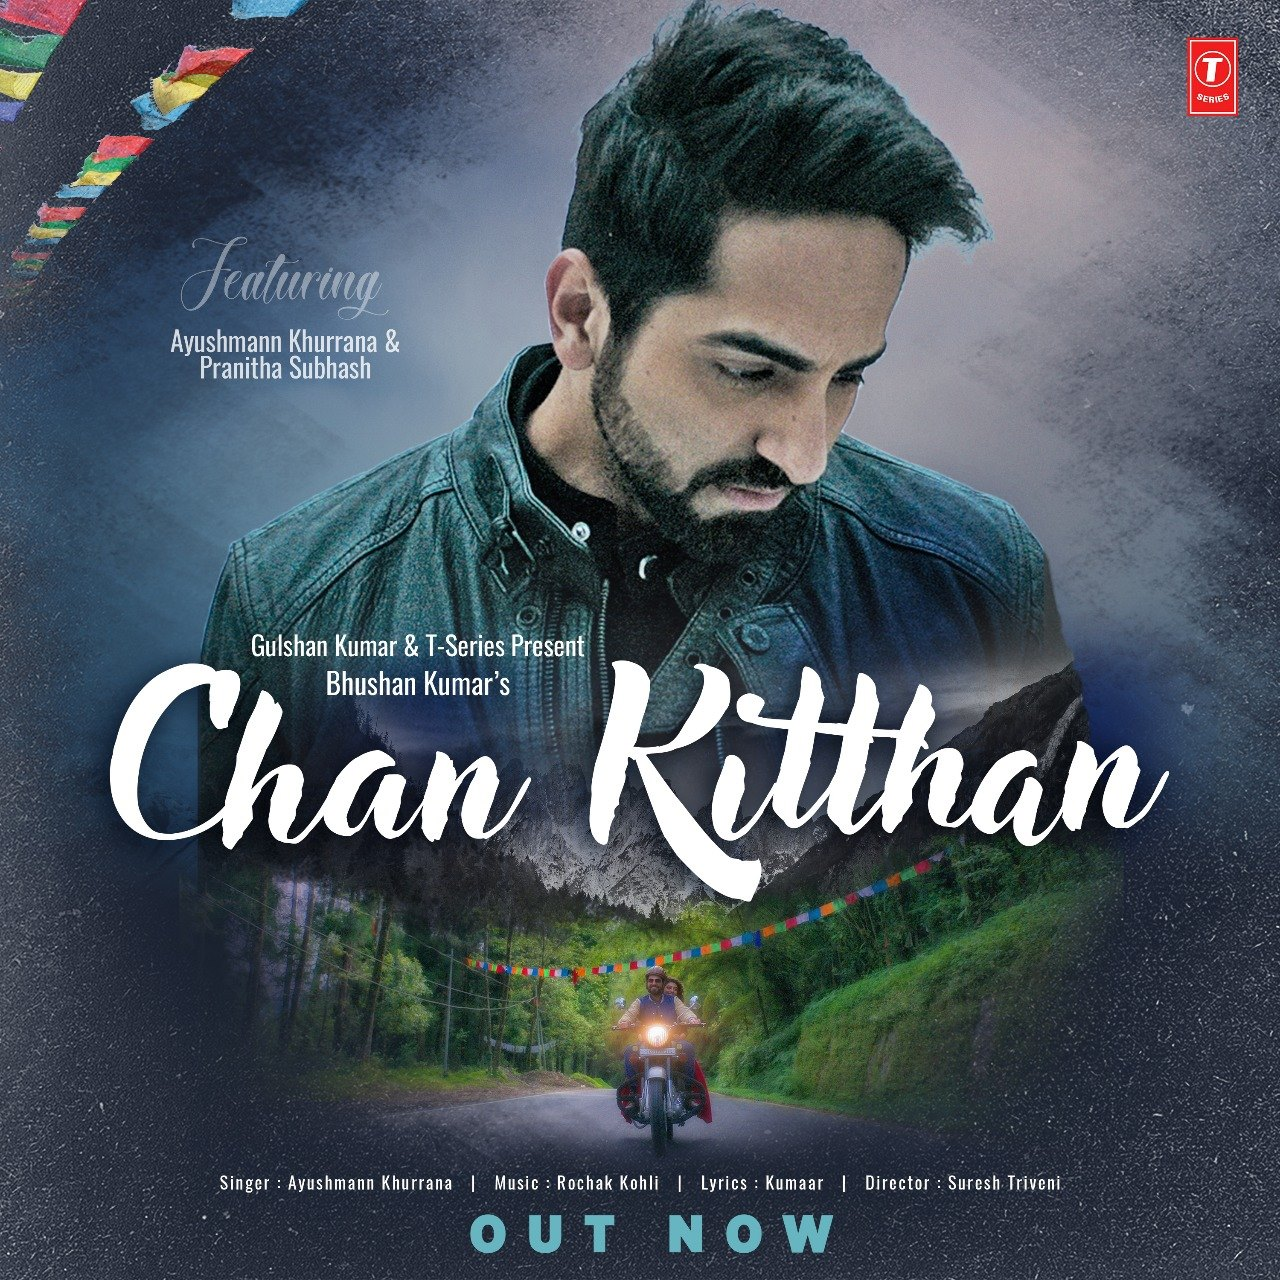 Chan Kitthan album artwork